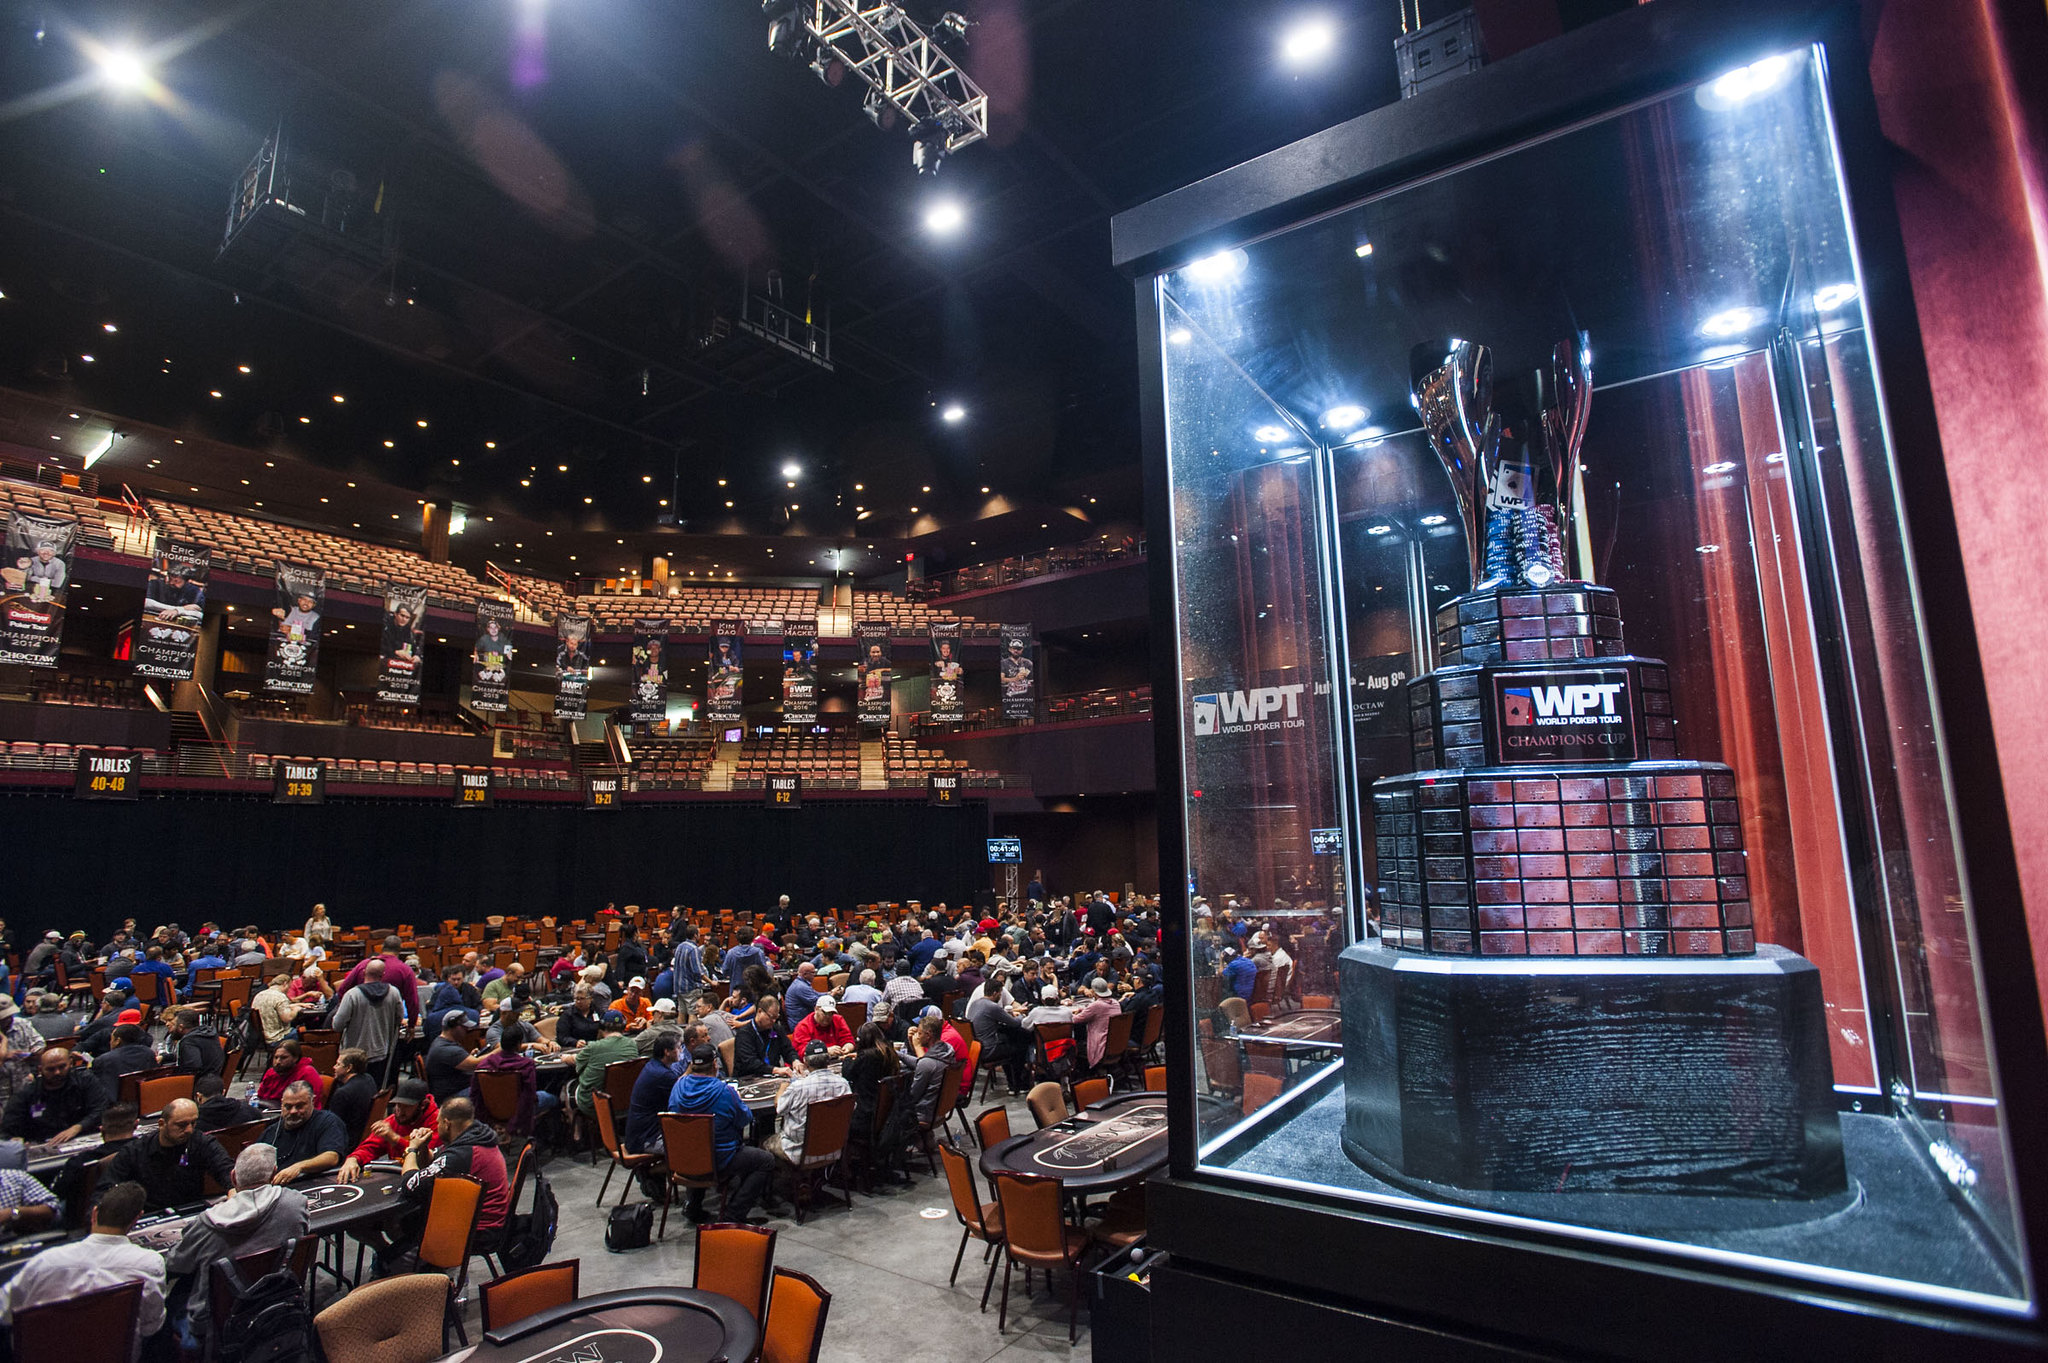 WPT Champions Cup WPT Choctaw